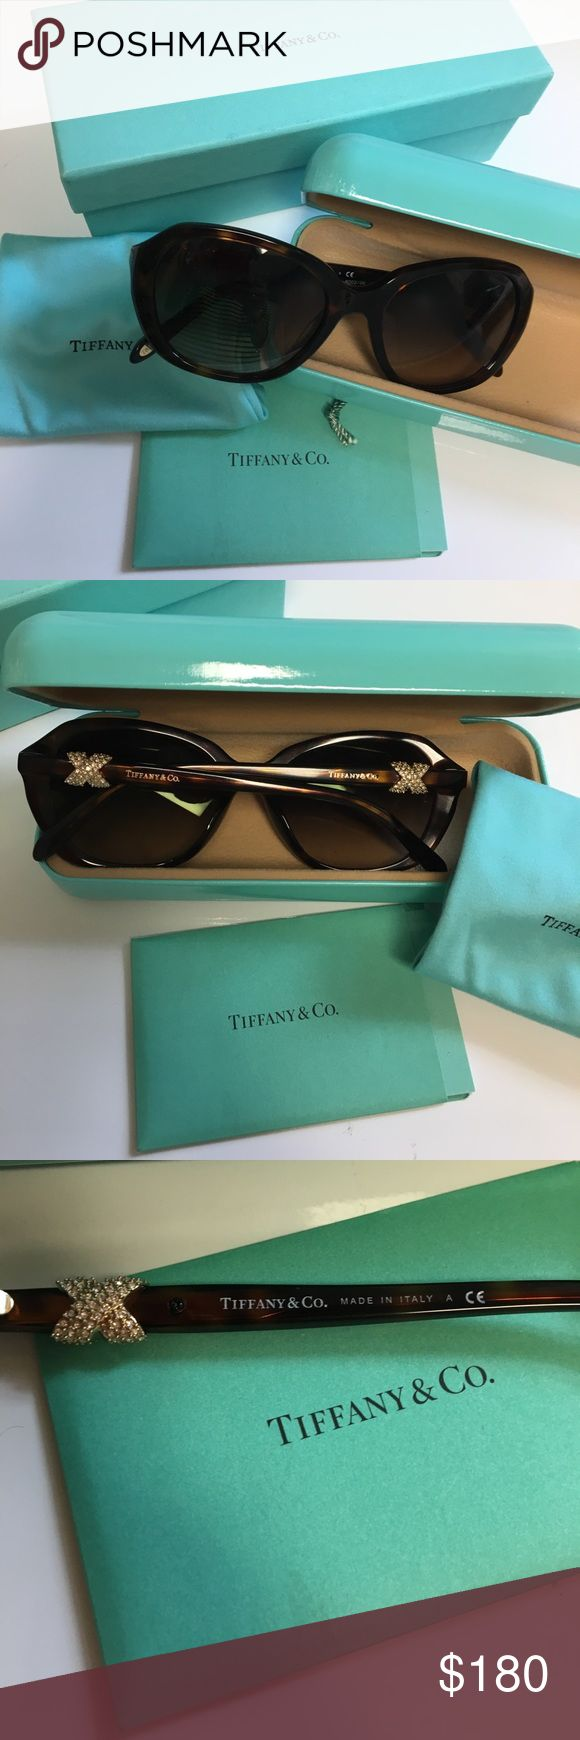 😎Authentic Tiffany&Co Tortoise Sunglasses 😎 Authentic Tiffany & Company sunglasses with pave crystals color is brown comes with dust bag certificate of authenticity and case as box Tiffany & Co. Accessories Sunglasses